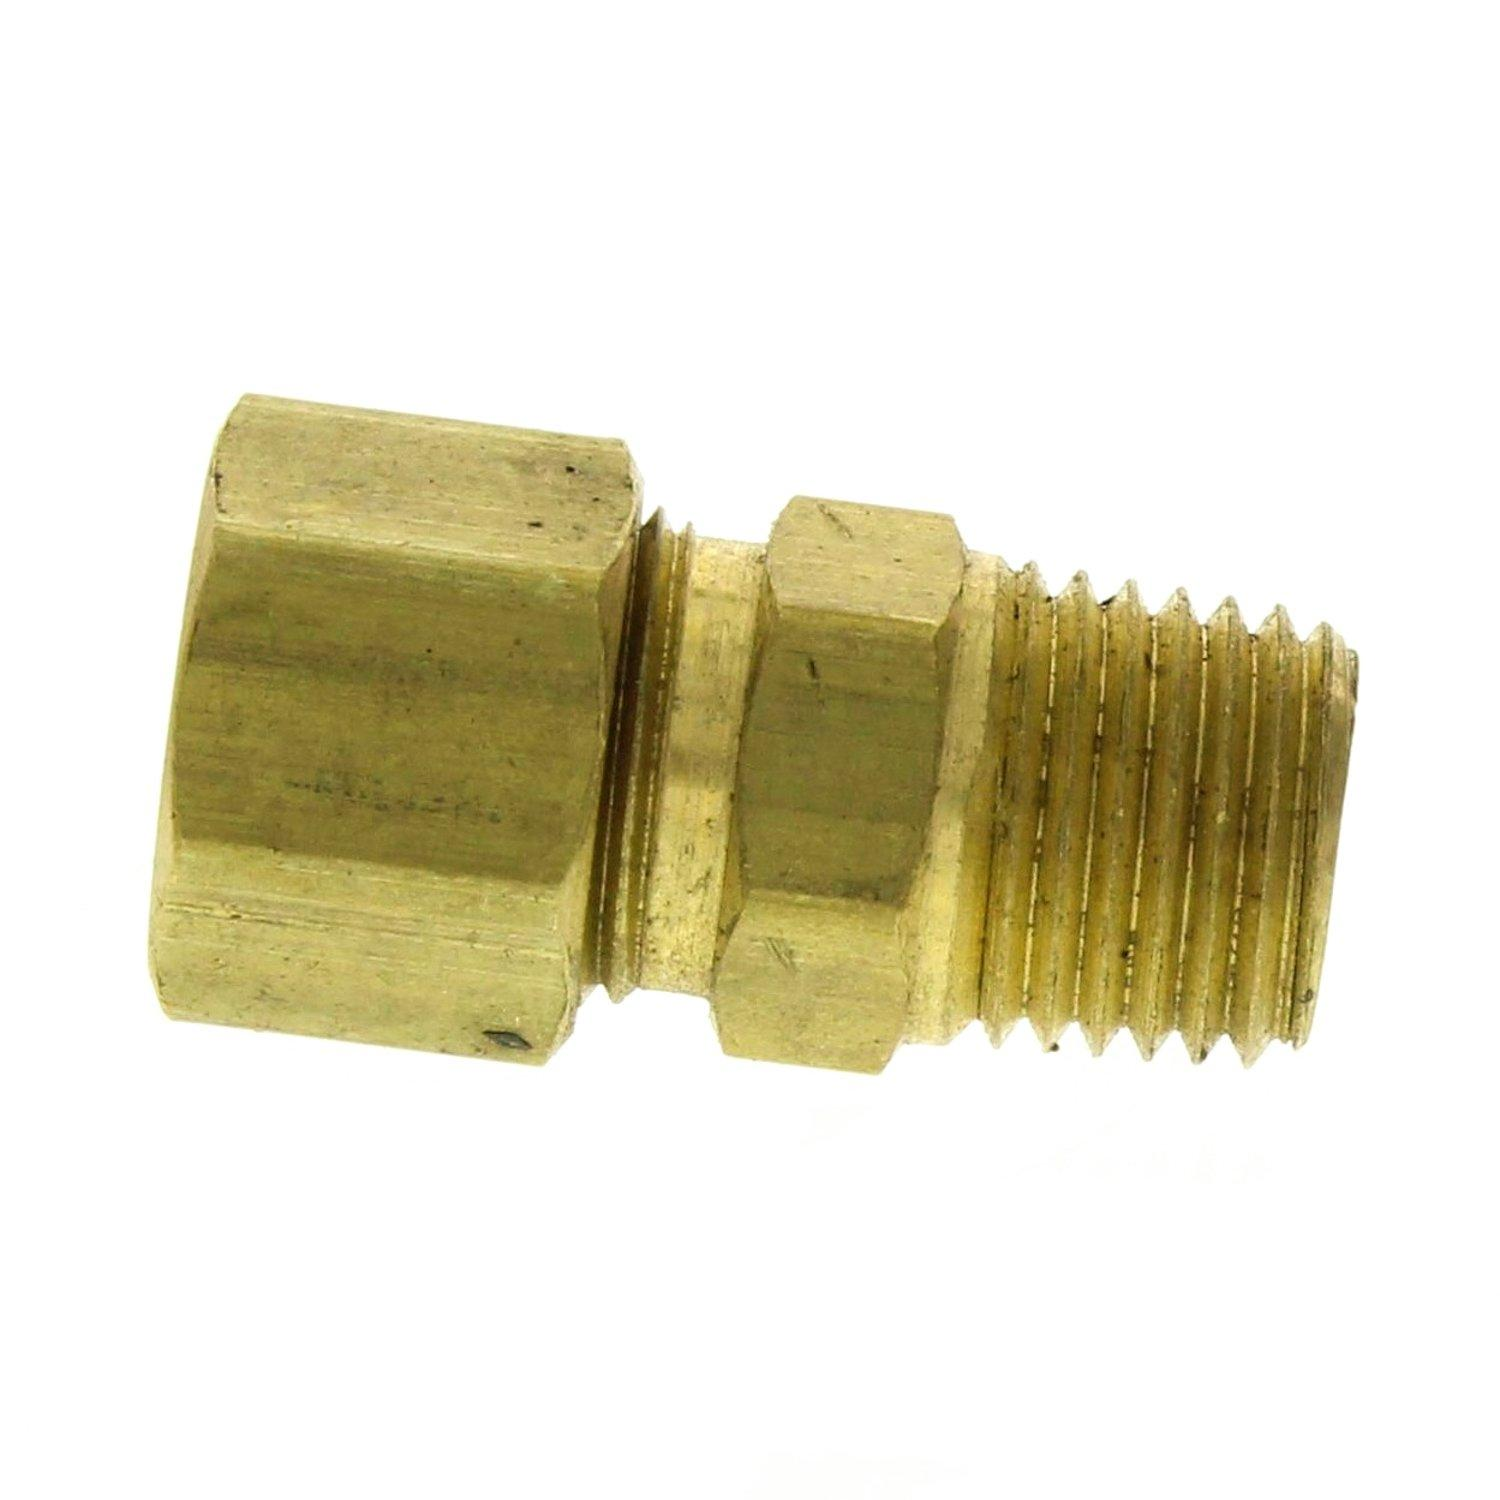 AMERICAN RANGE BRASS FITTING